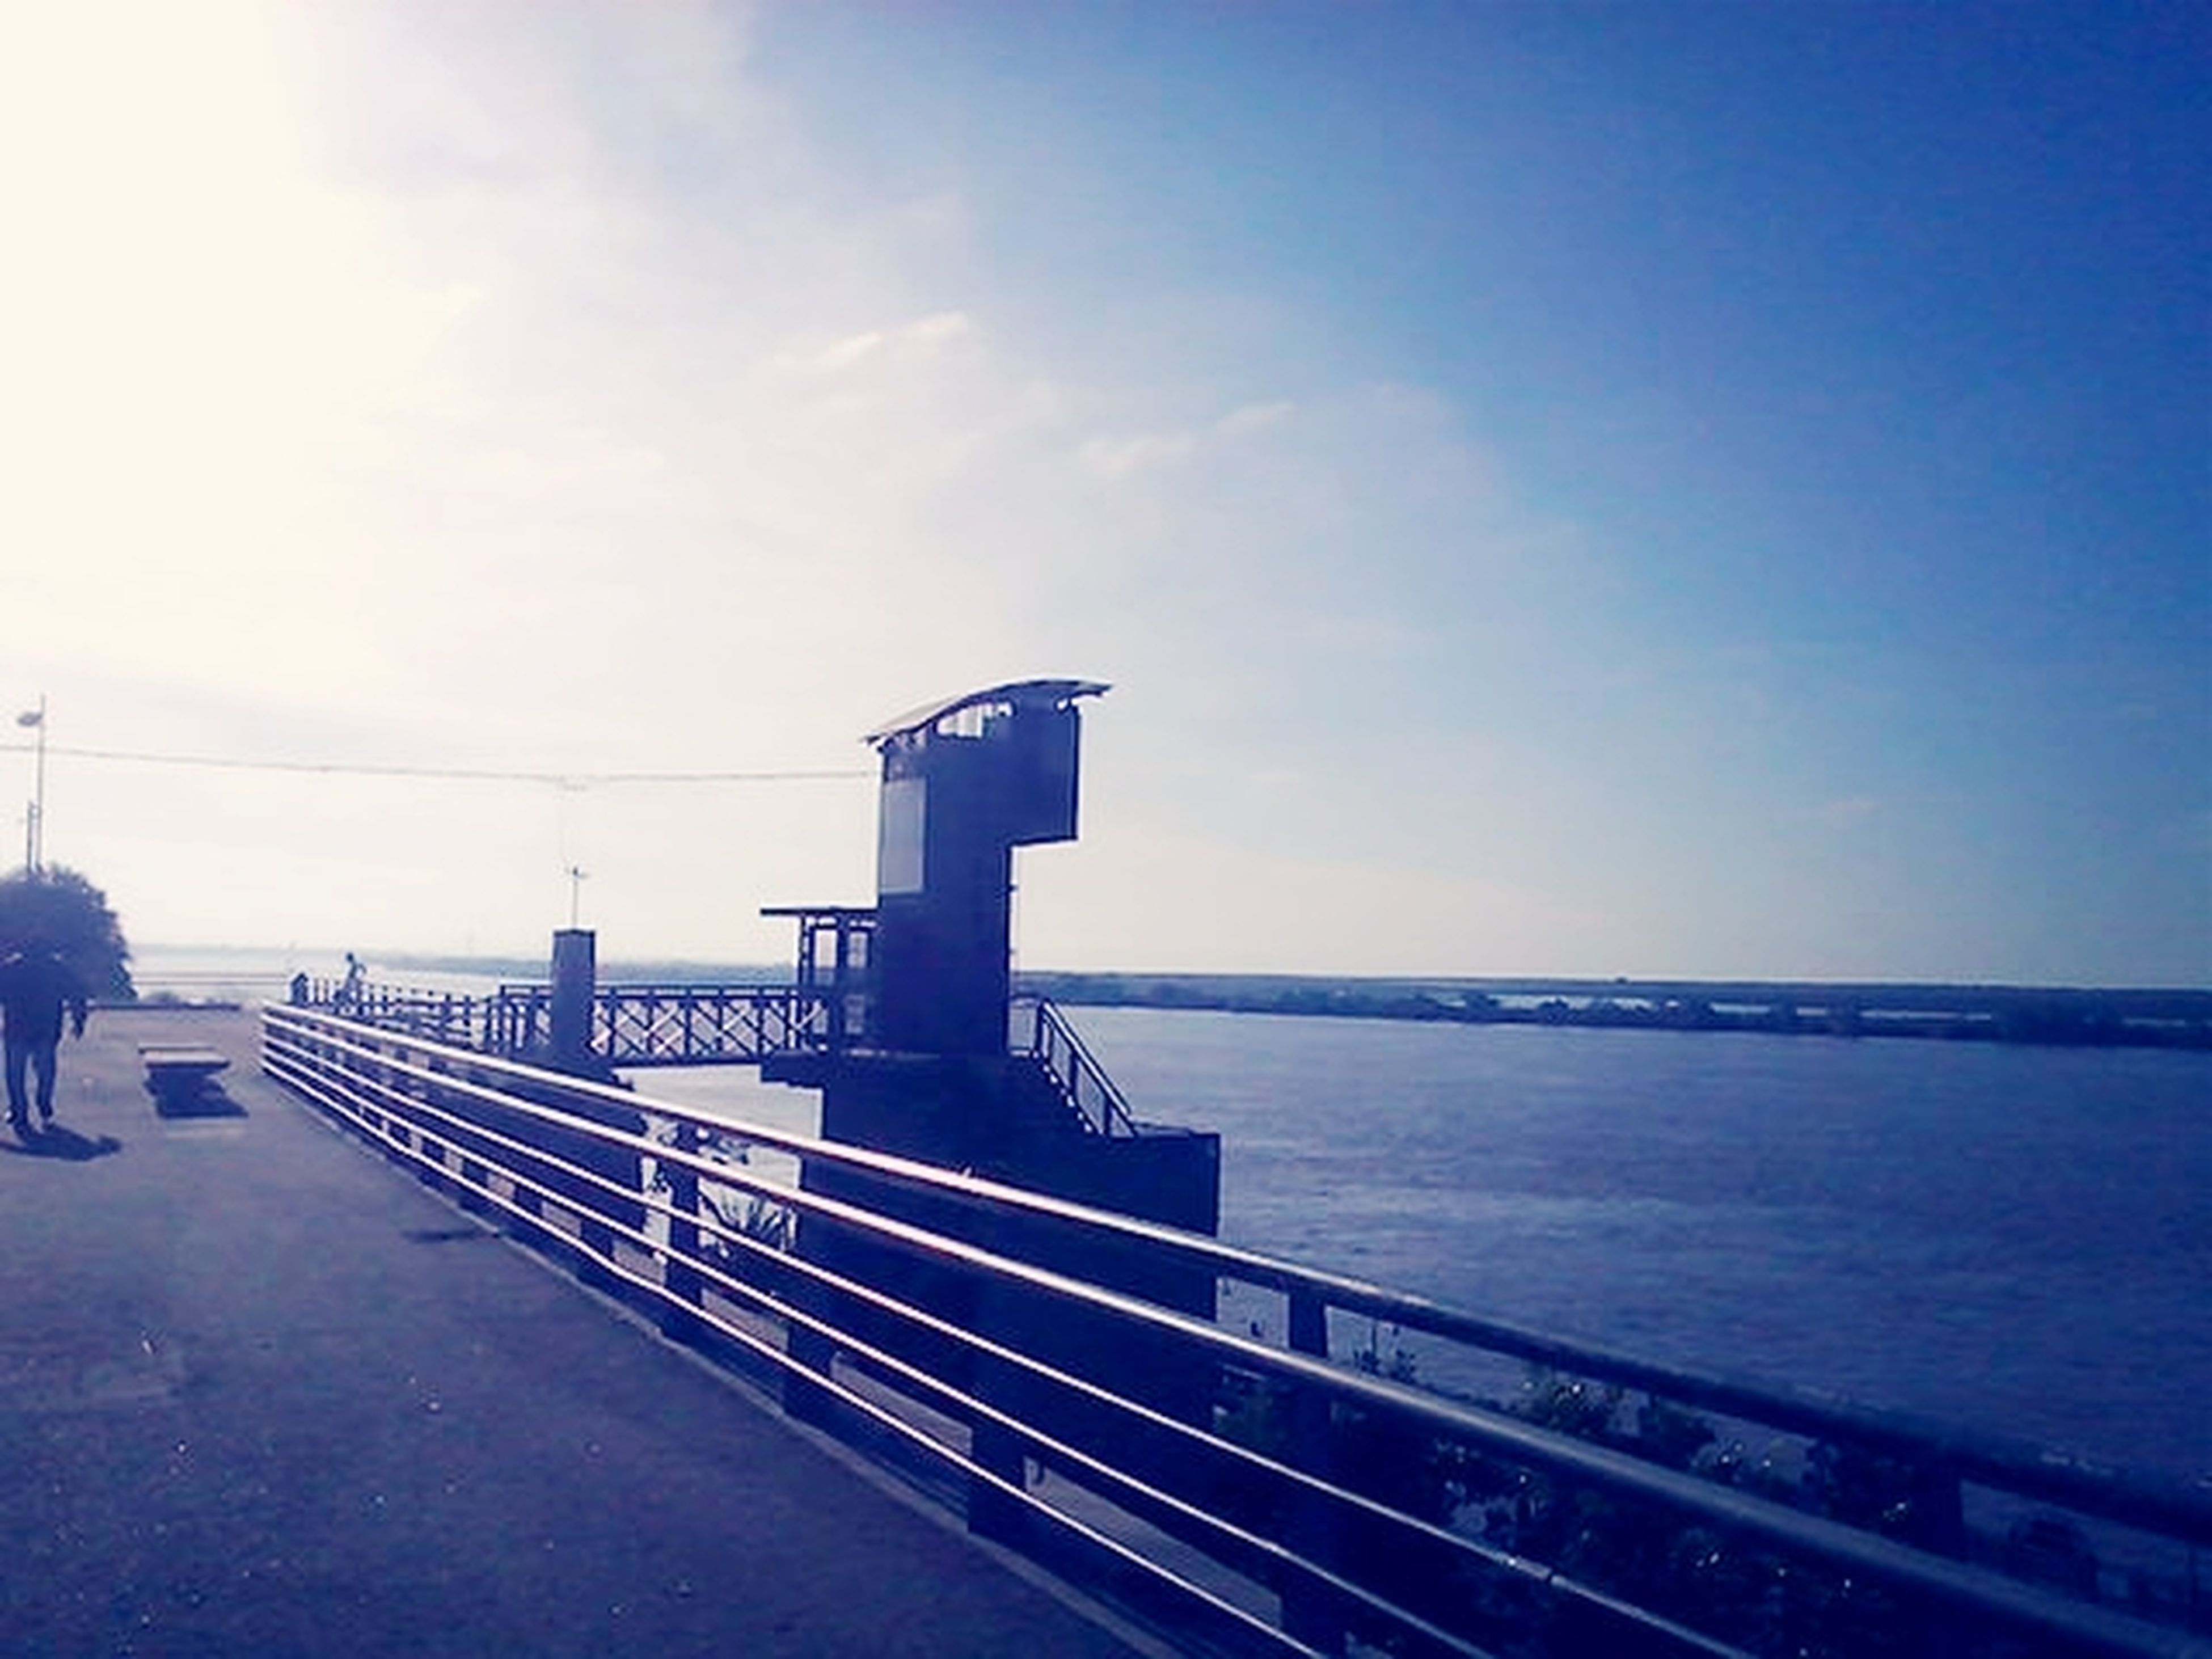 sea, railing, water, horizon over water, sky, pier, tranquility, tranquil scene, built structure, scenics, blue, nature, beauty in nature, the way forward, architecture, outdoors, calm, idyllic, day, jetty